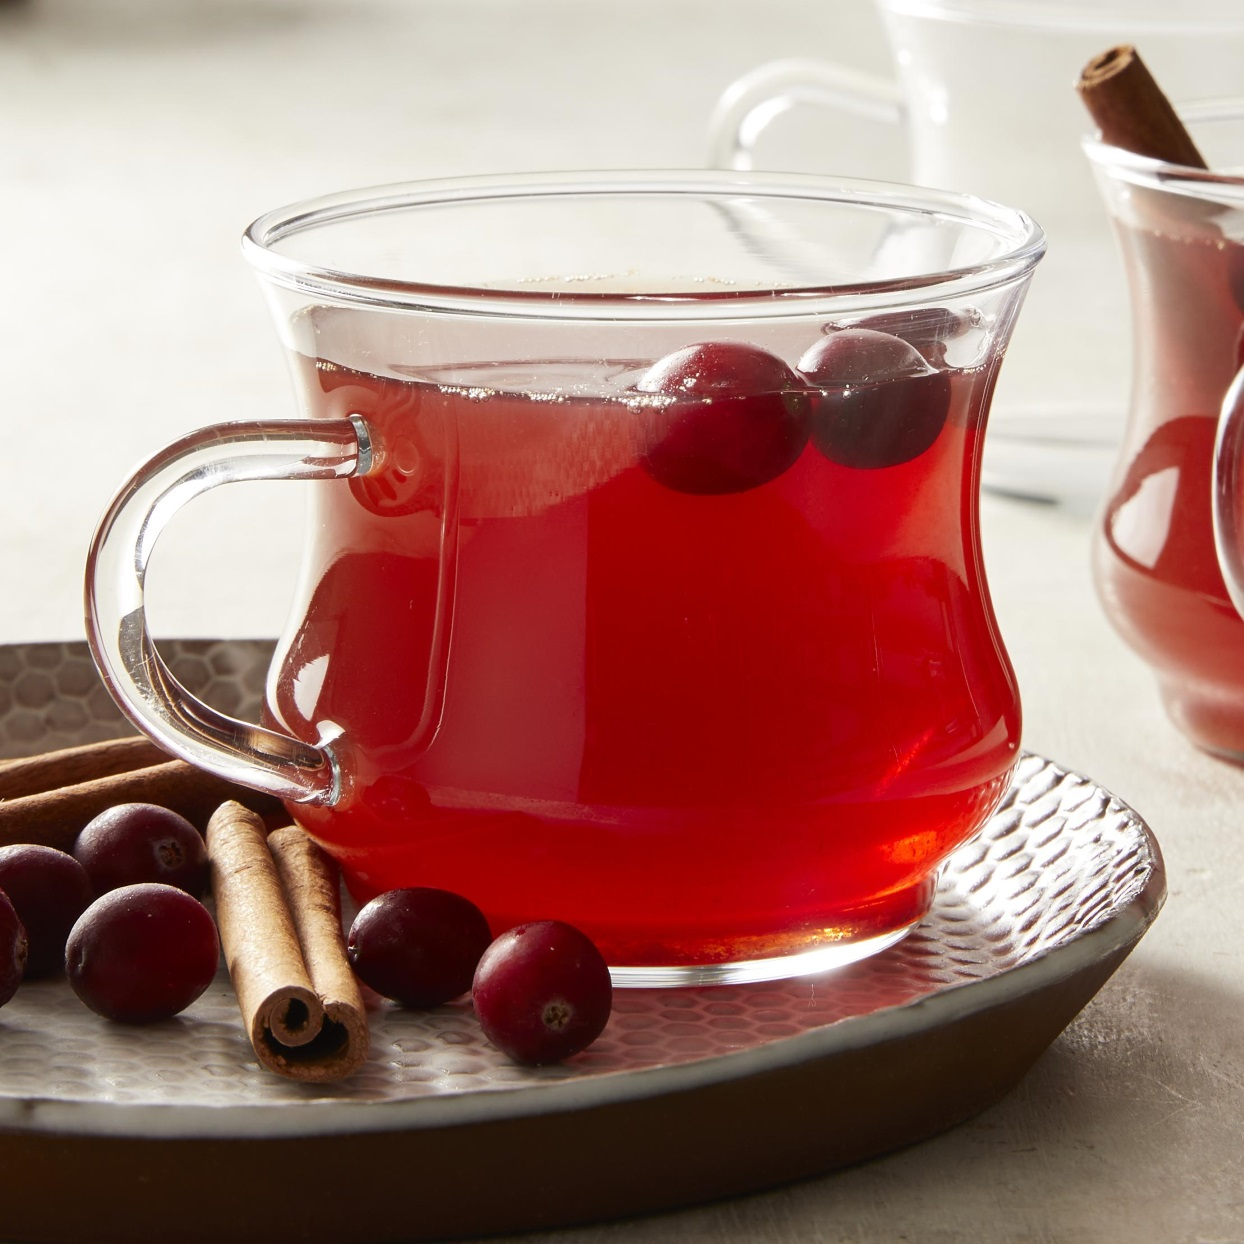 Orange zest and cinnamon infuse this warm apple-cranberry drink with lots of holiday flavor.